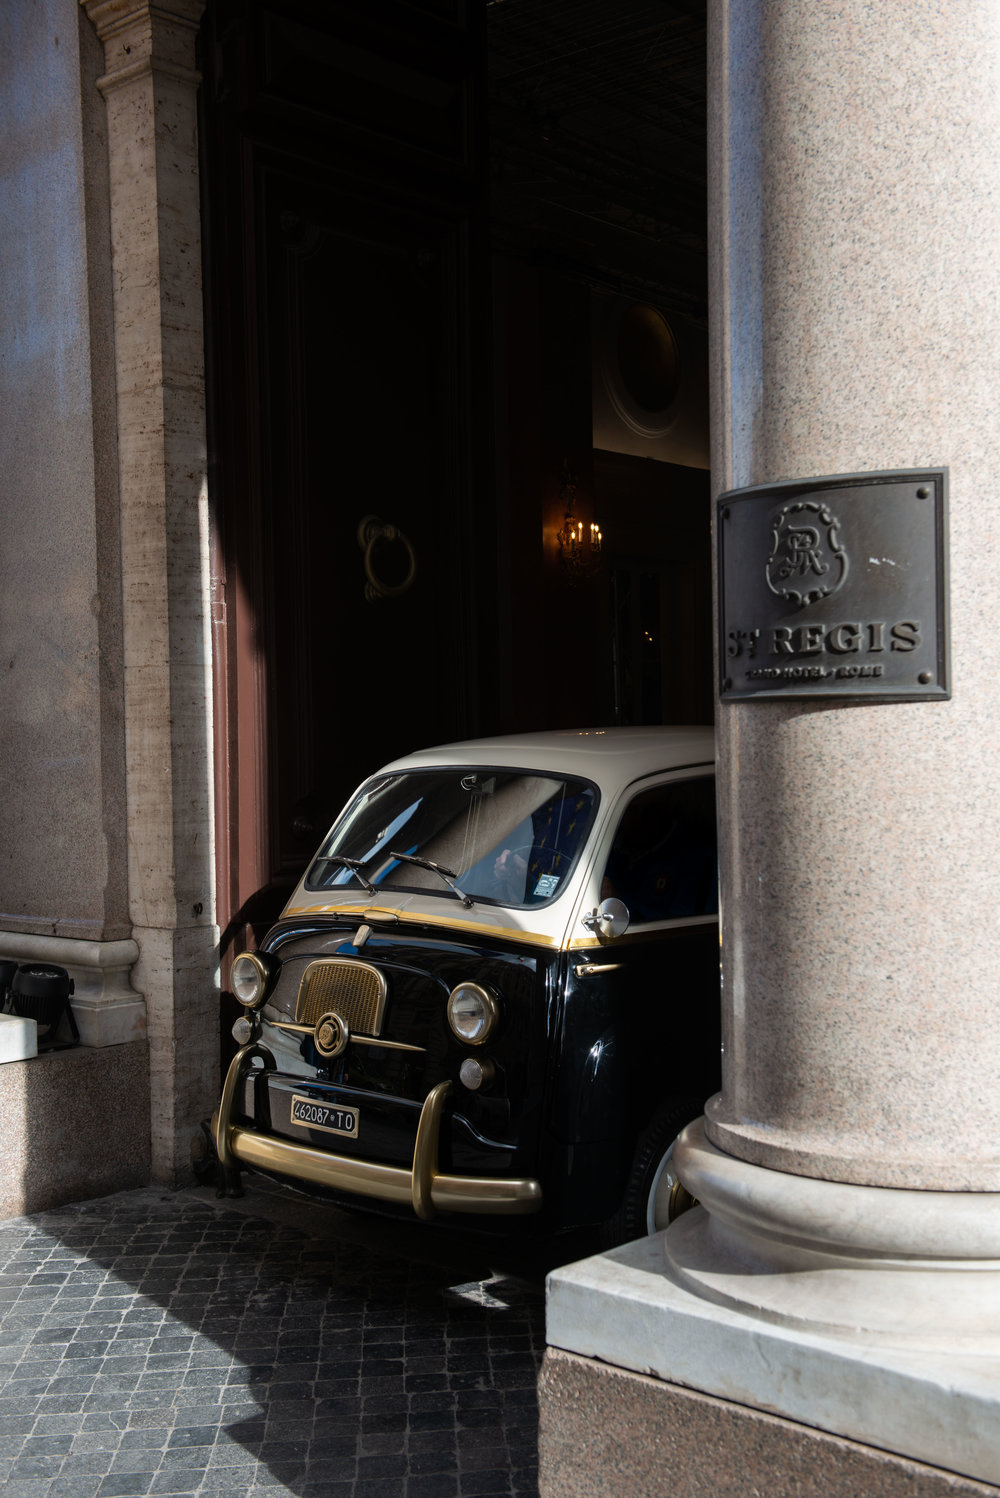 The custom 1962 Fiat 600 at St Regis Rome